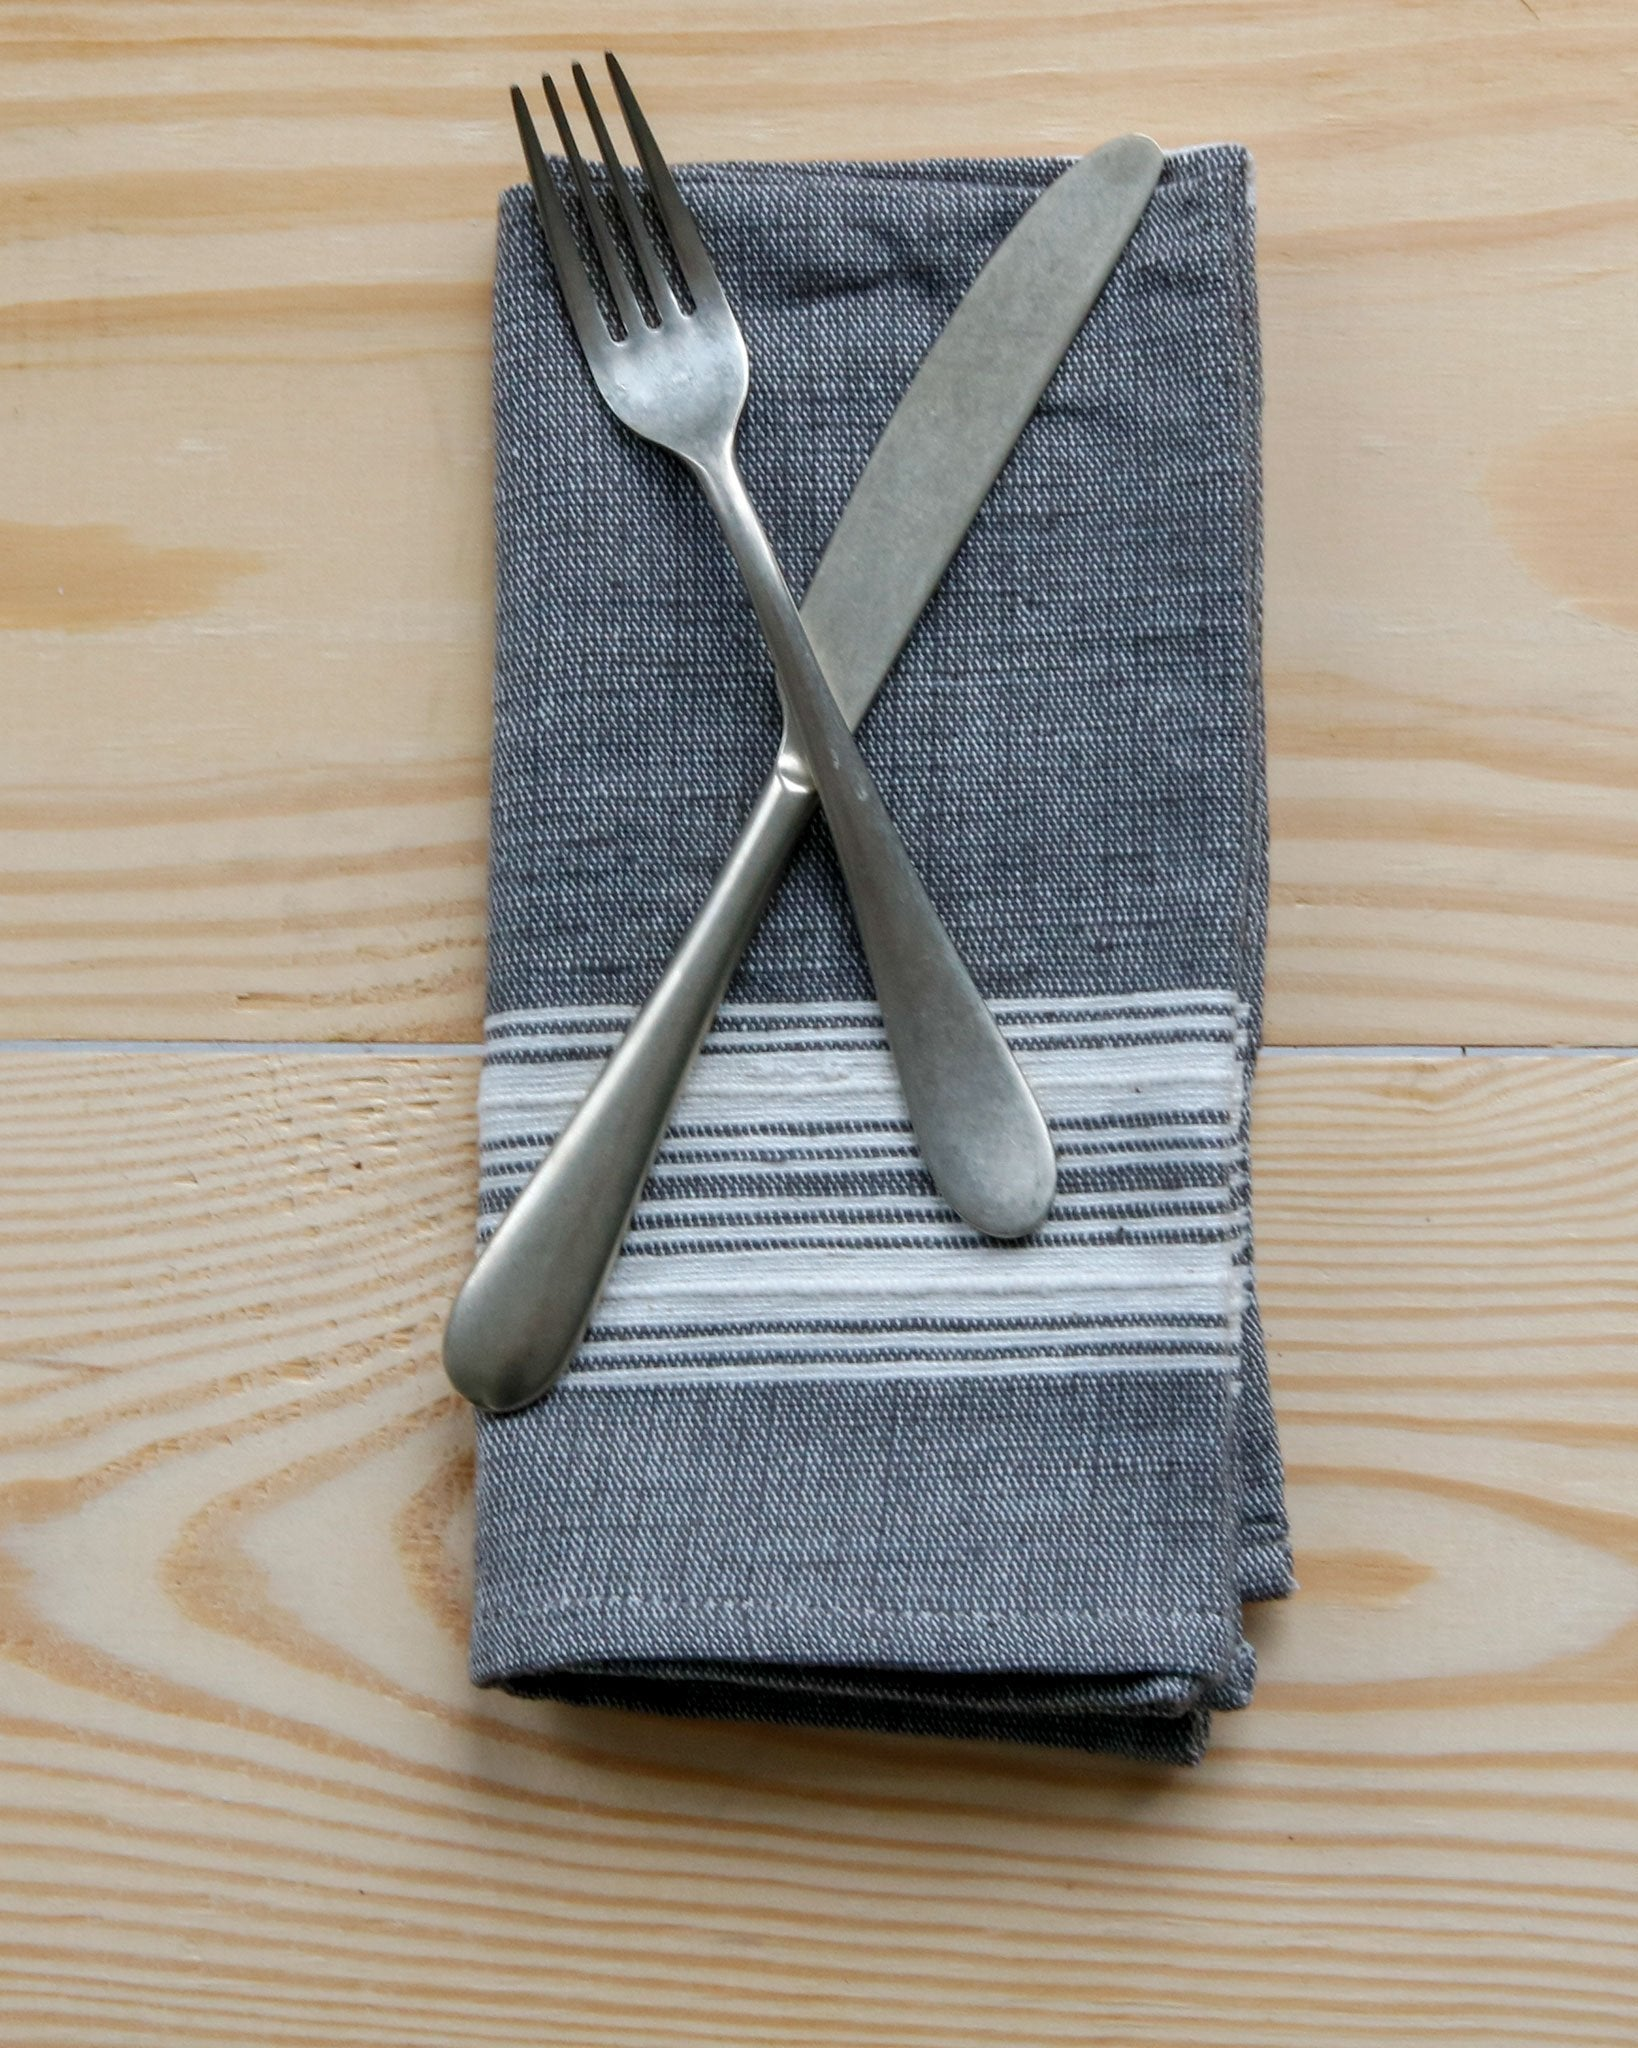 Rounded Flatware in Matte Stainless